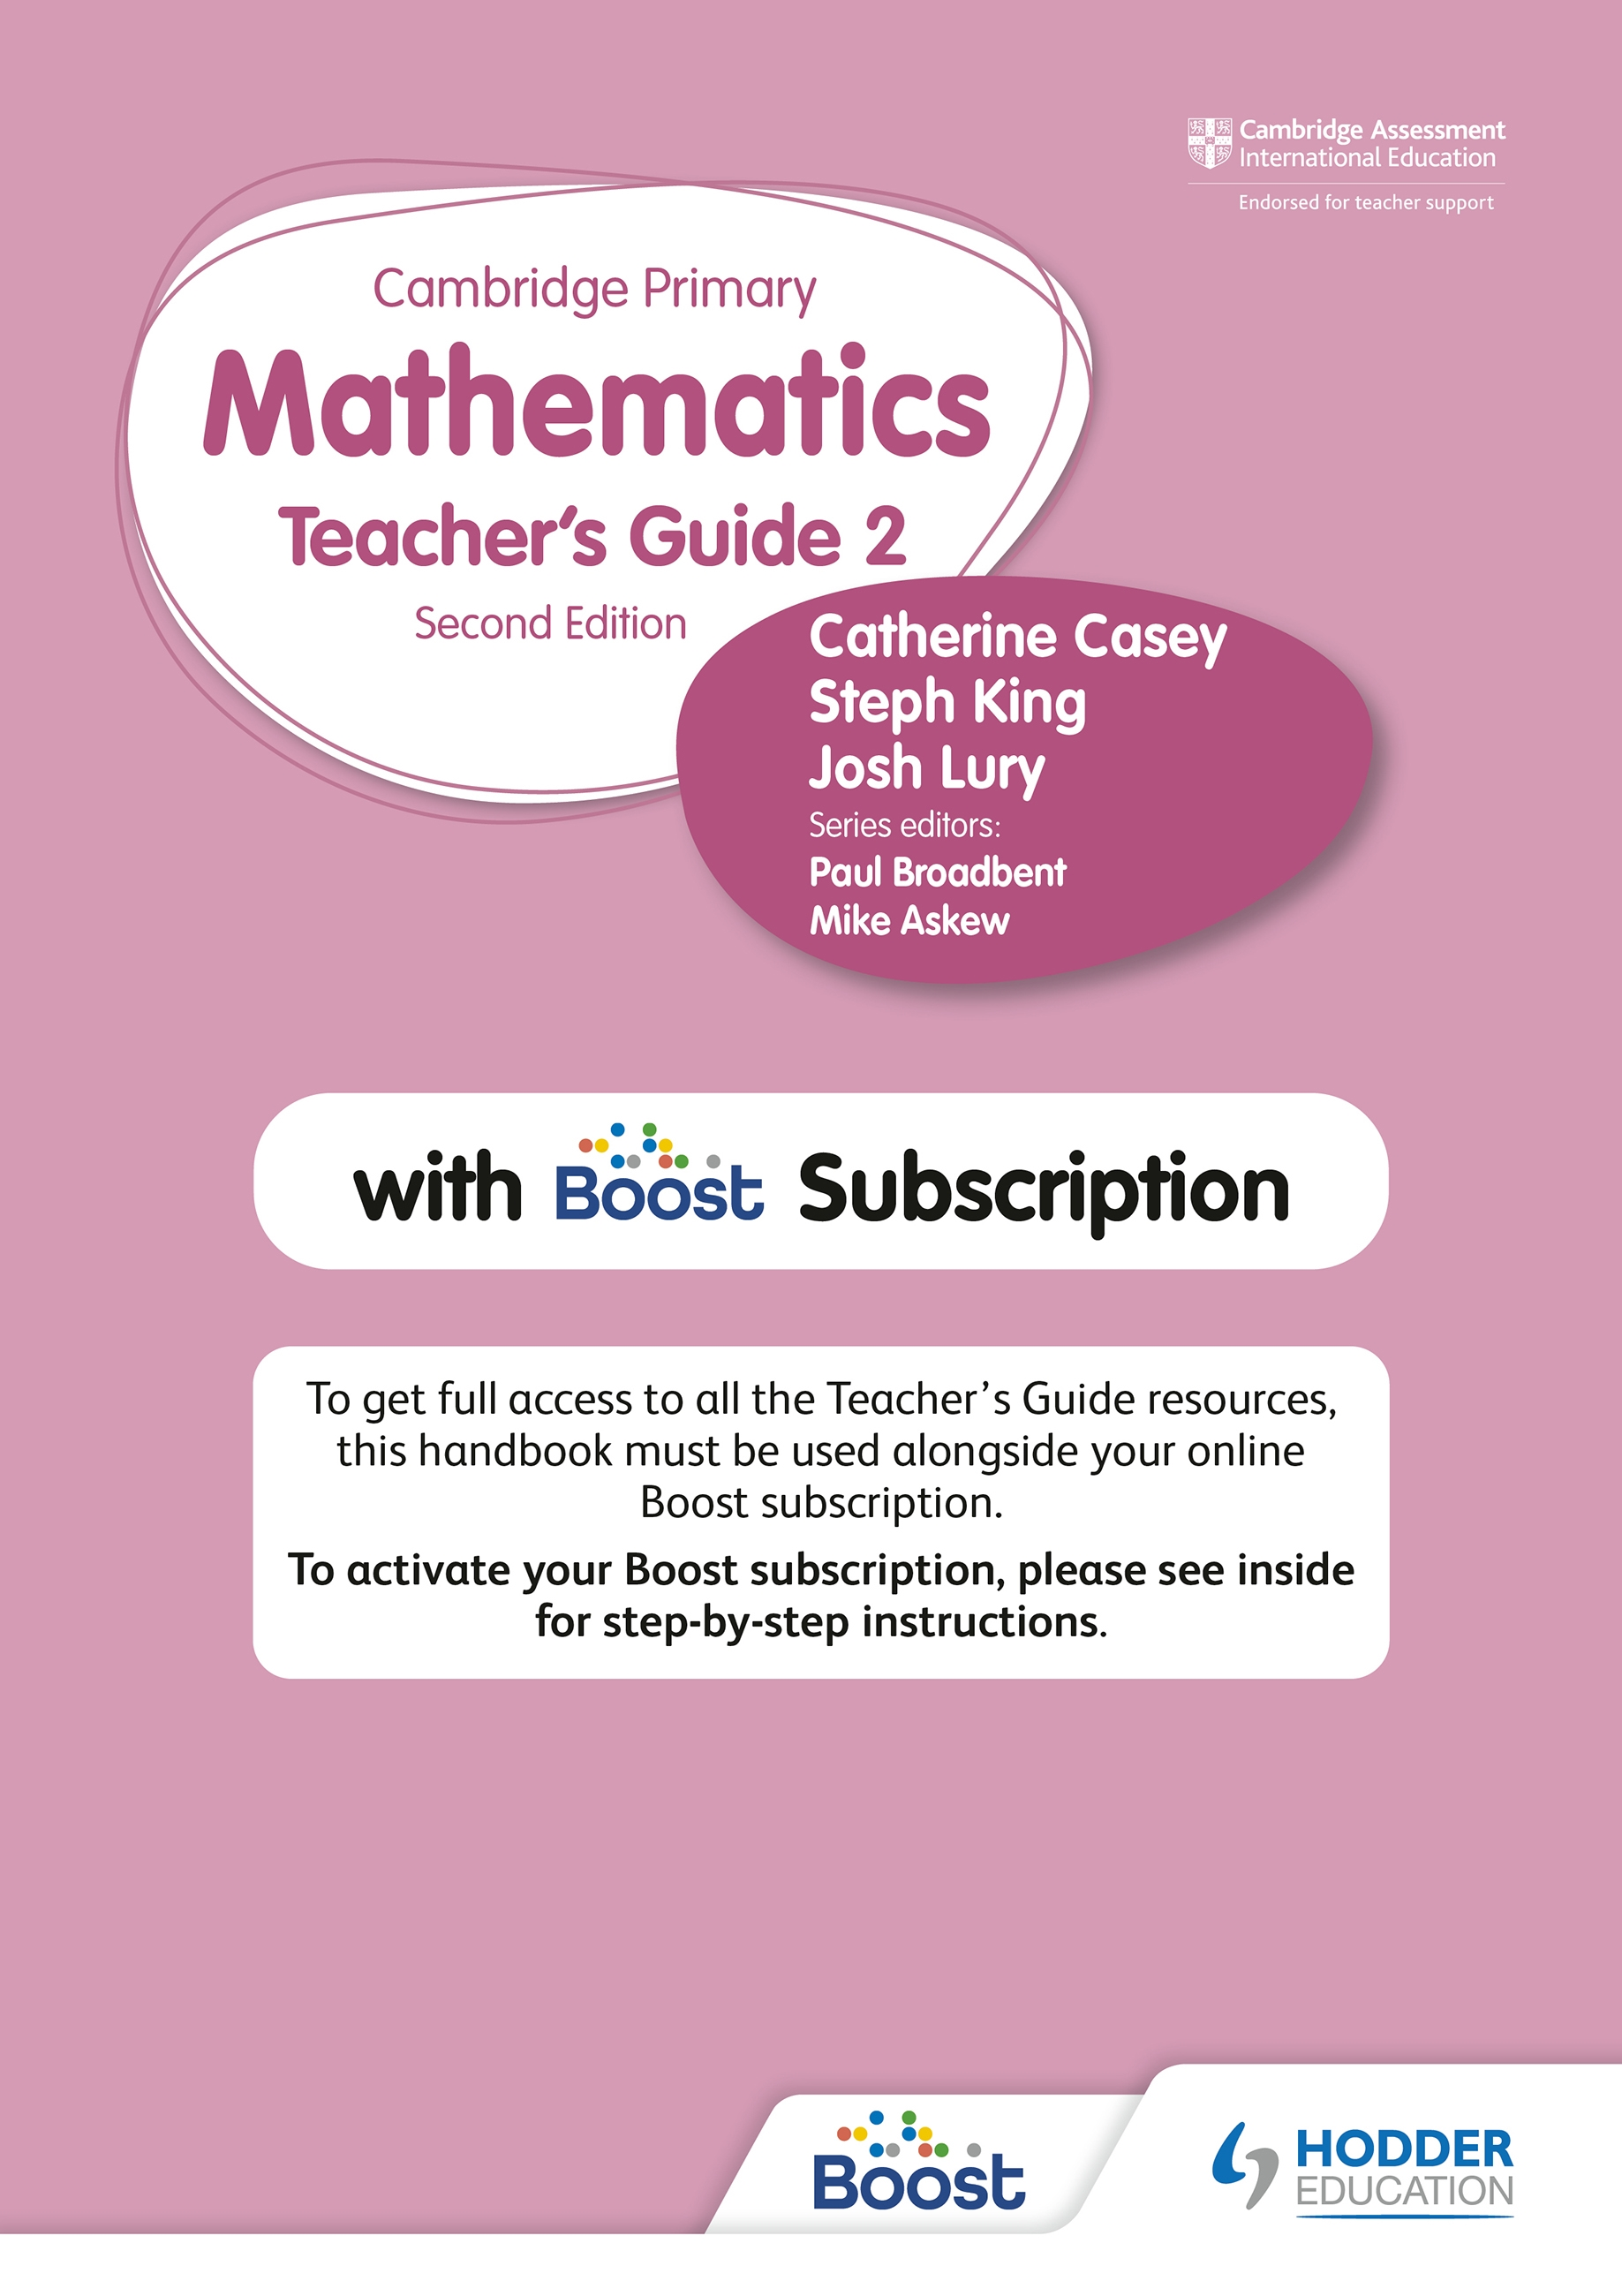 Cambridge Primary Mathematics Teacher's Guide 2 with Boost Subscription